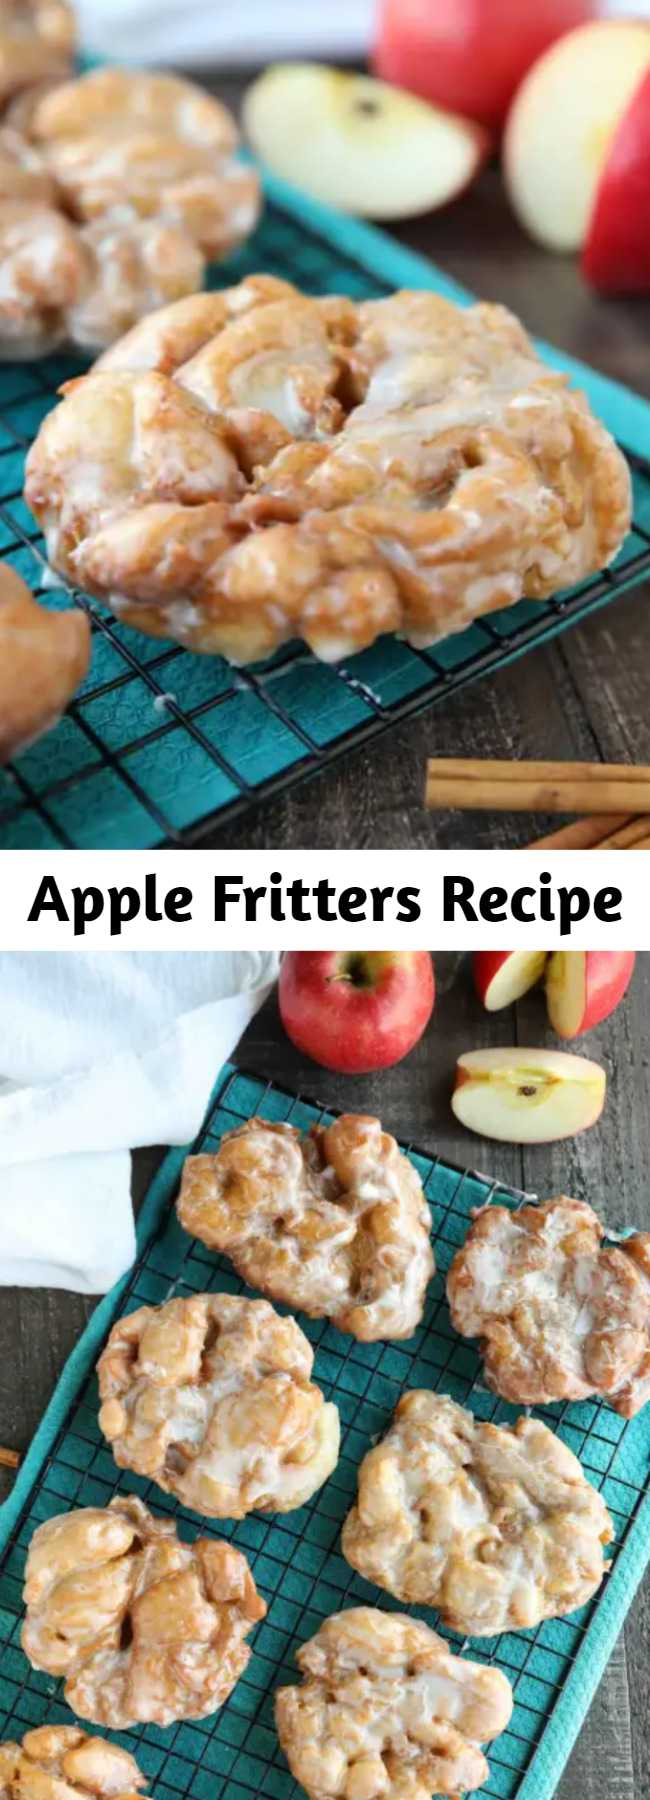 Apple Fritters Recipe - an easy and delicious yeast doughnut with chunks of apples, ground cinnamon, and a sweet glaze.